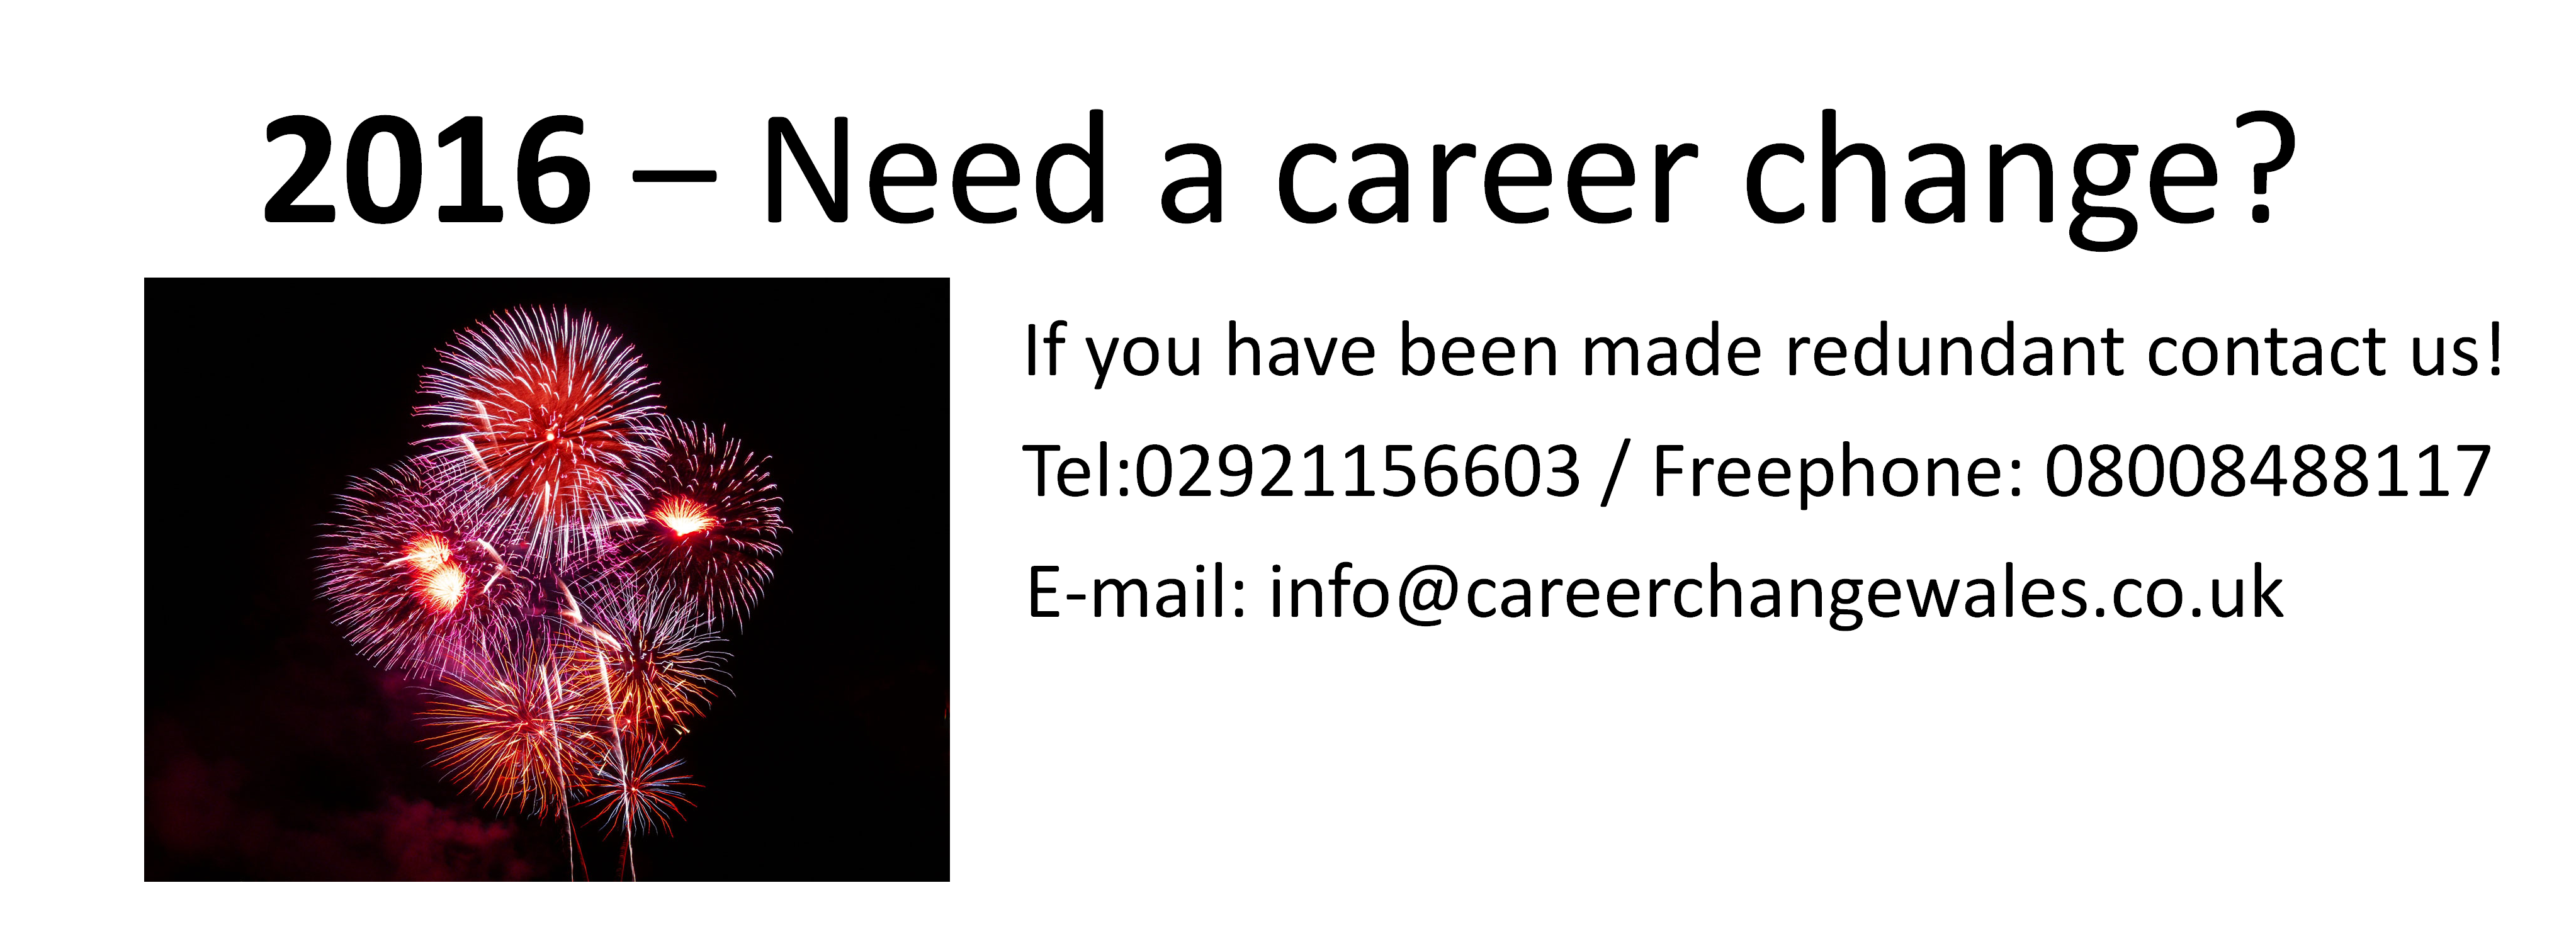 have you been made redundant 2016 need career change